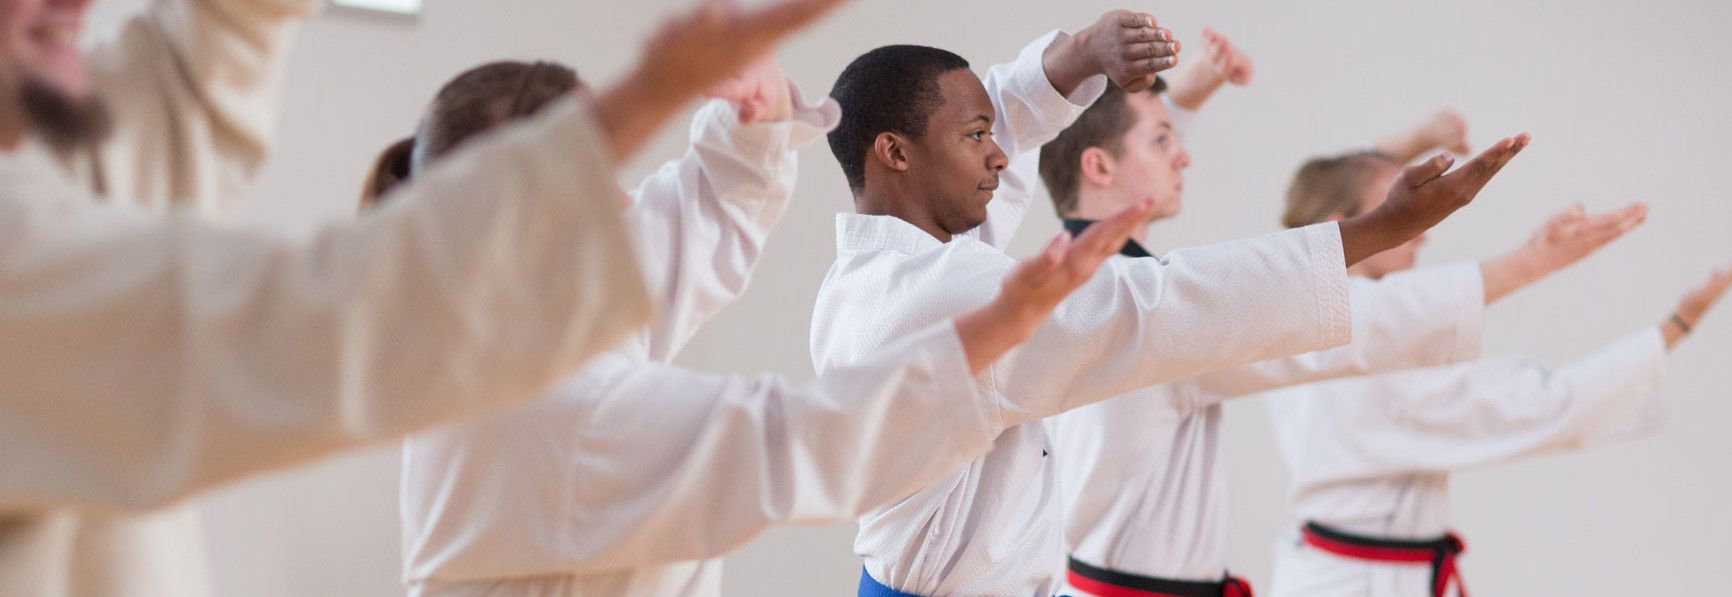 By participating in martial arts you can greatly improve